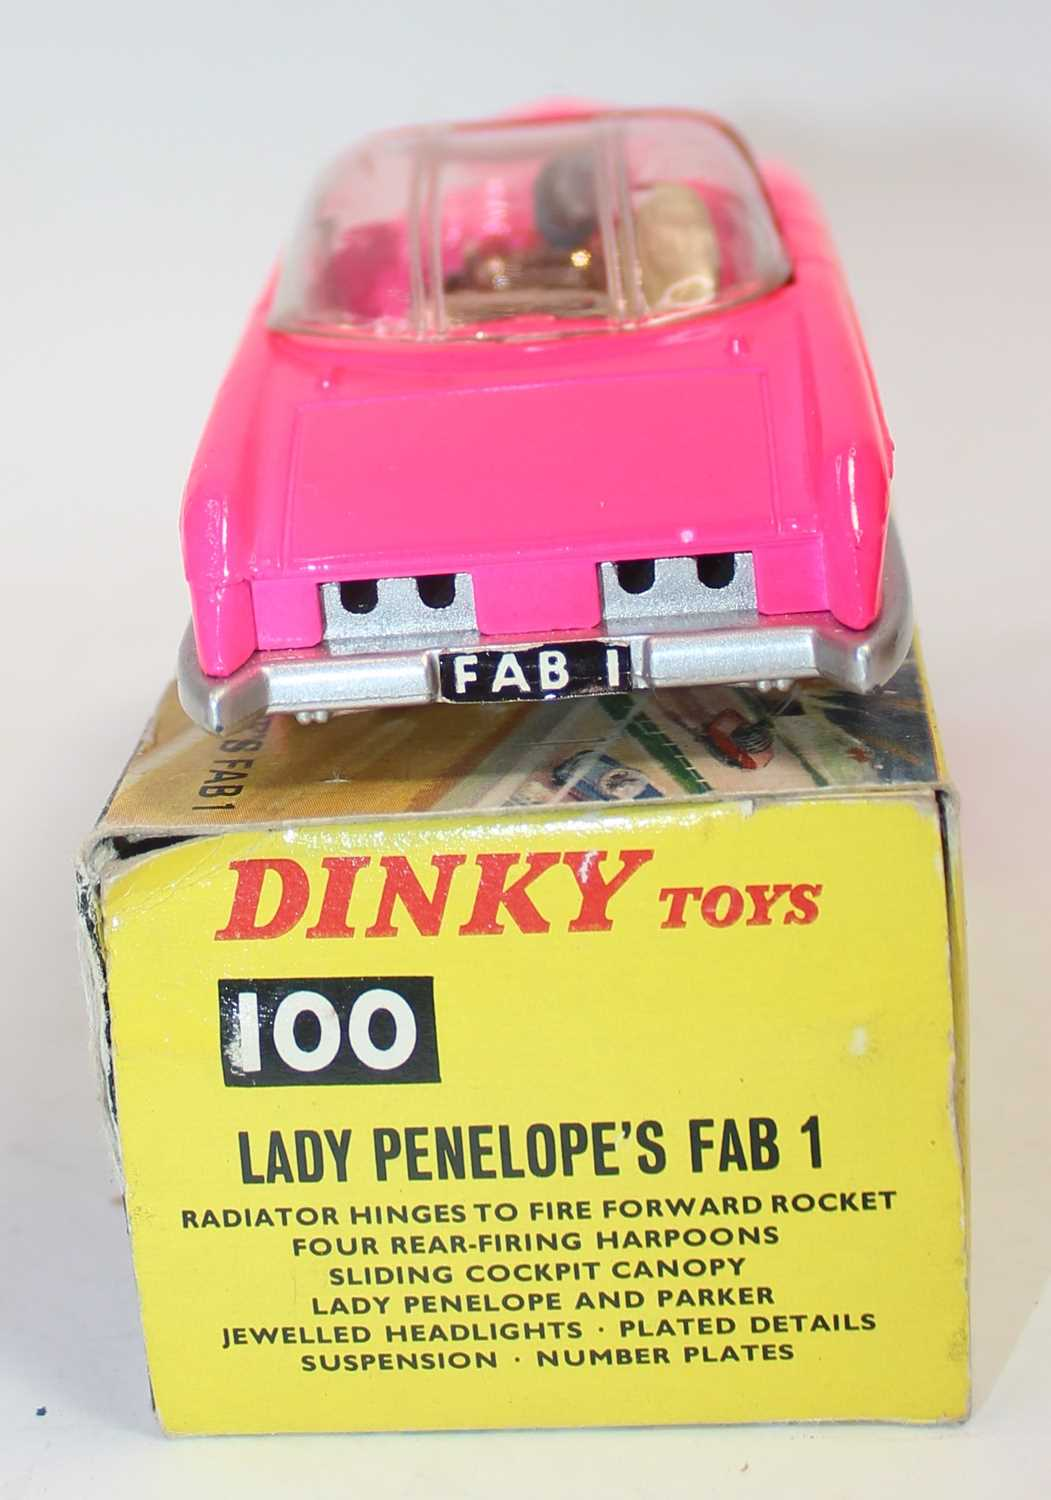 Dinky Toys Boxed 100 Lady Penelopes FAB 1 From TV series 'Thunderbirds' in the rarer fluorescent - Image 4 of 7